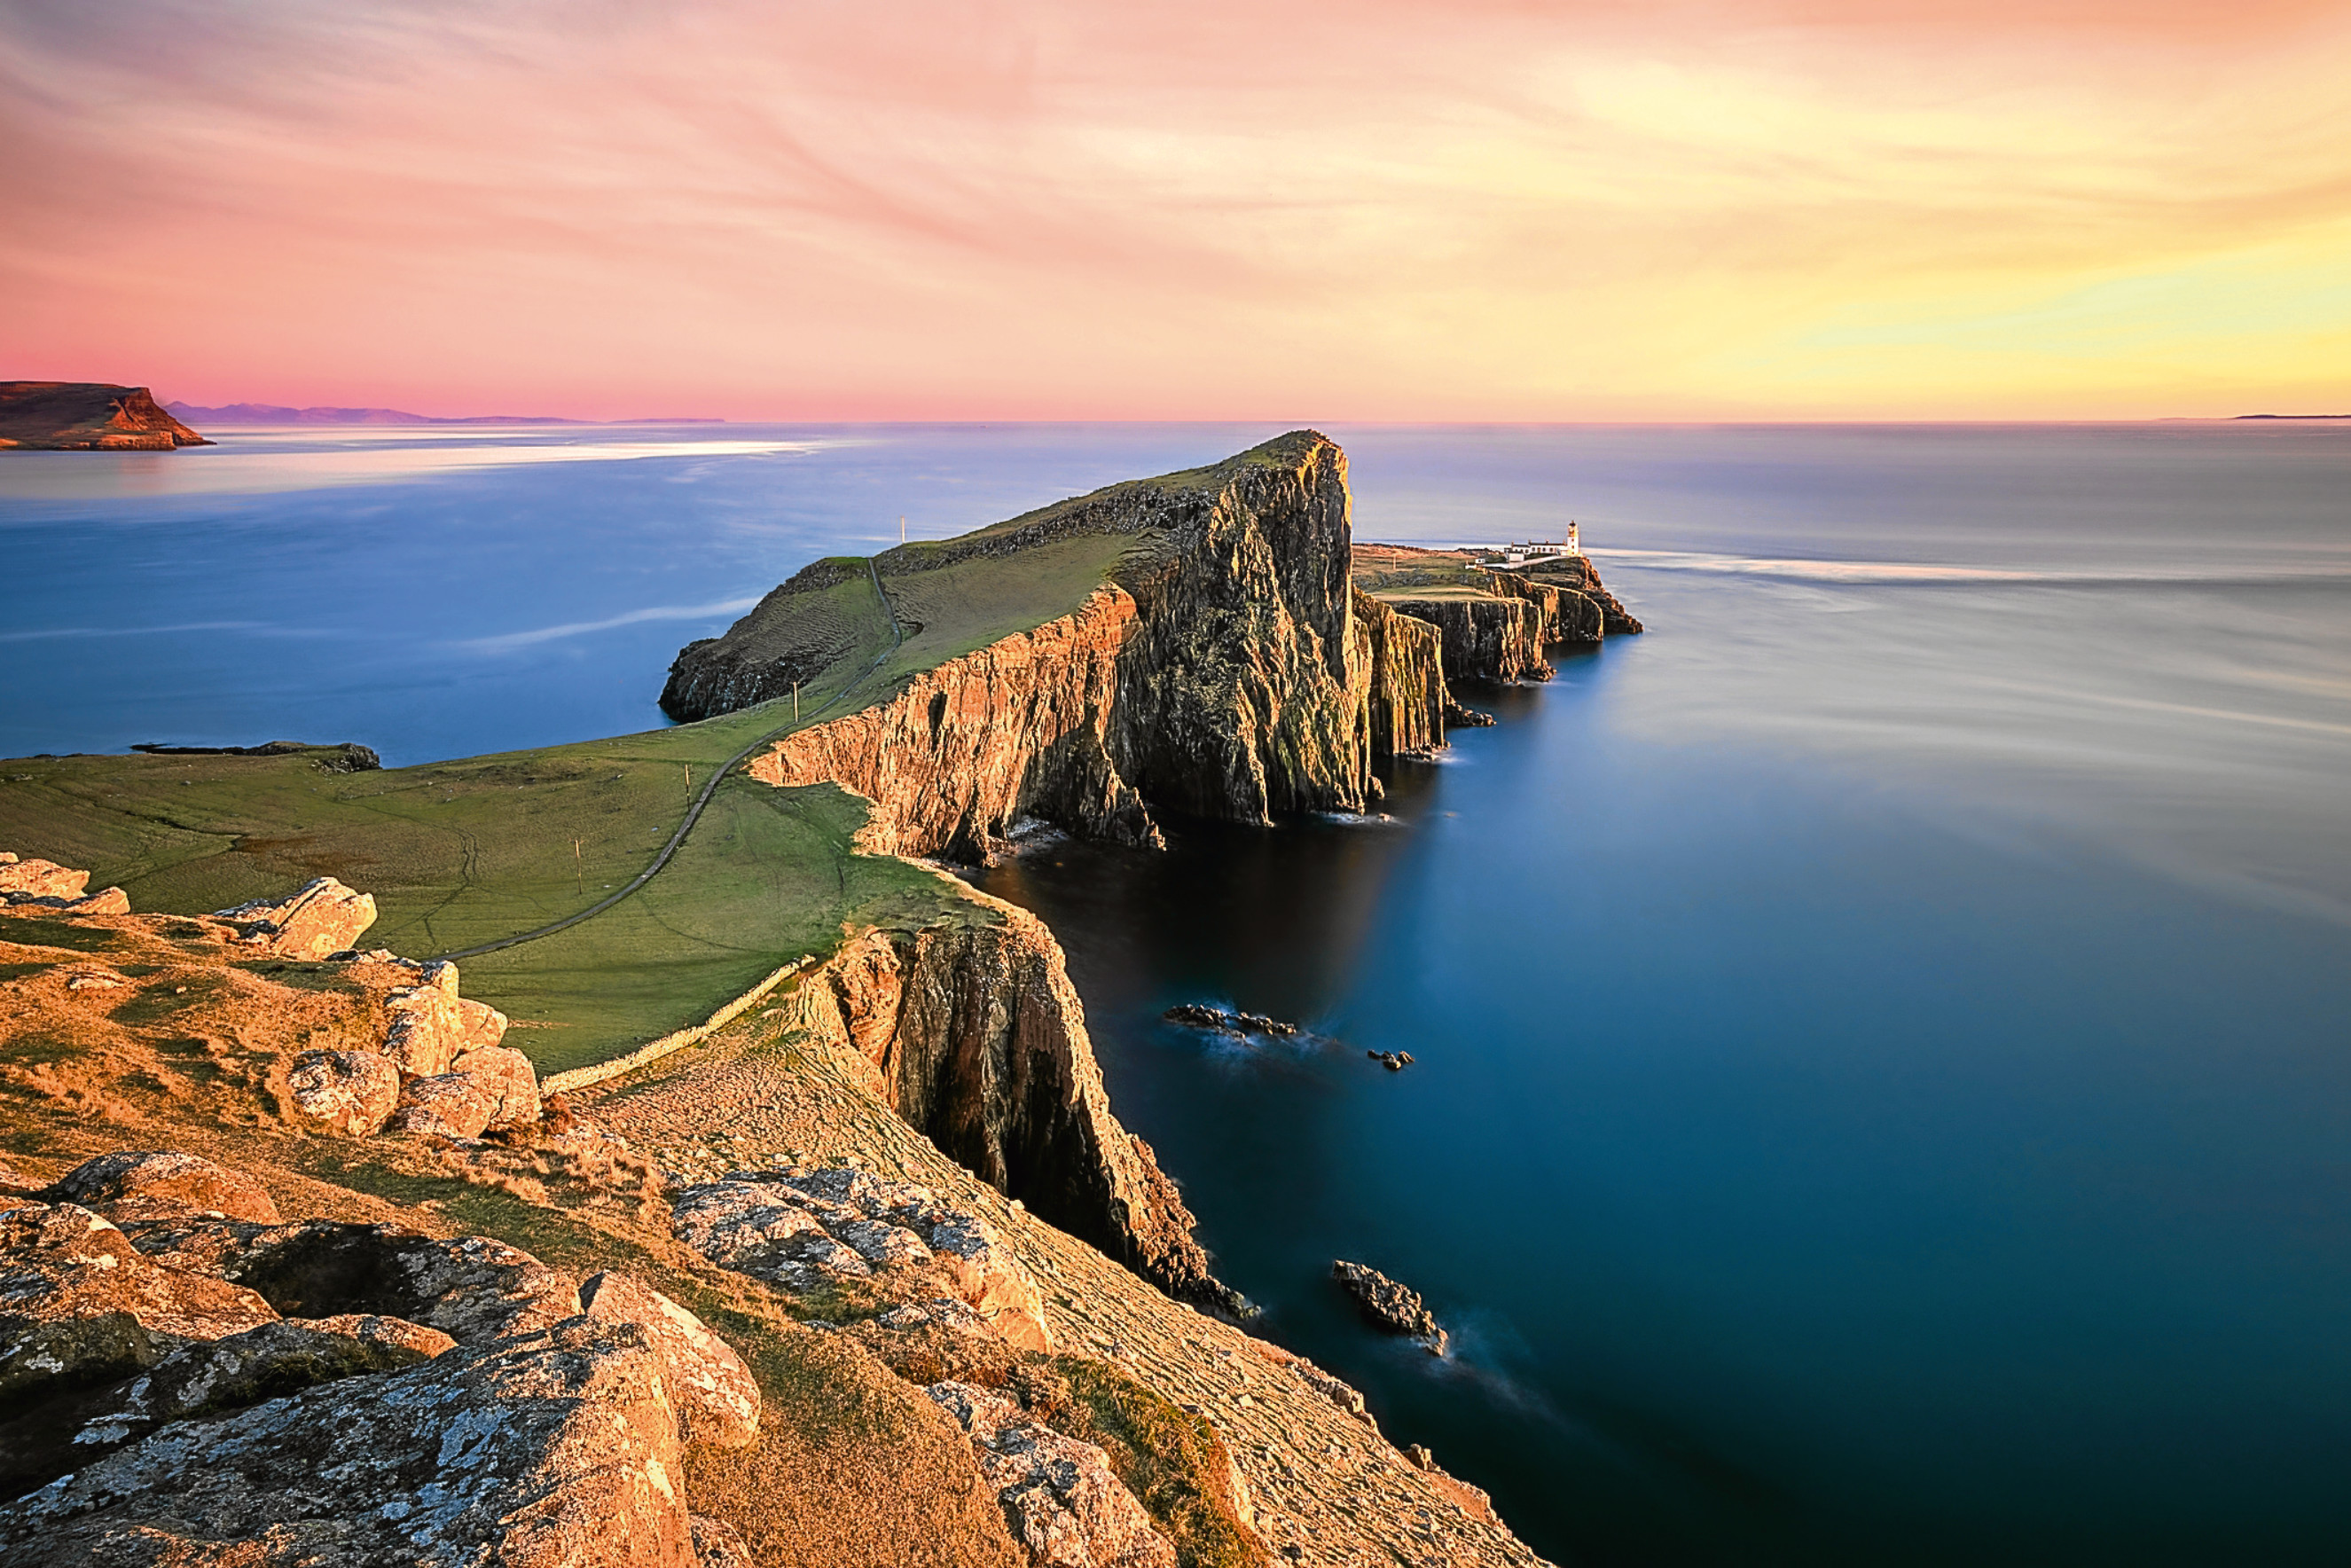 ​The dramatic Isle of Skye came out on top for the most Instagrammable spot in Scotland.